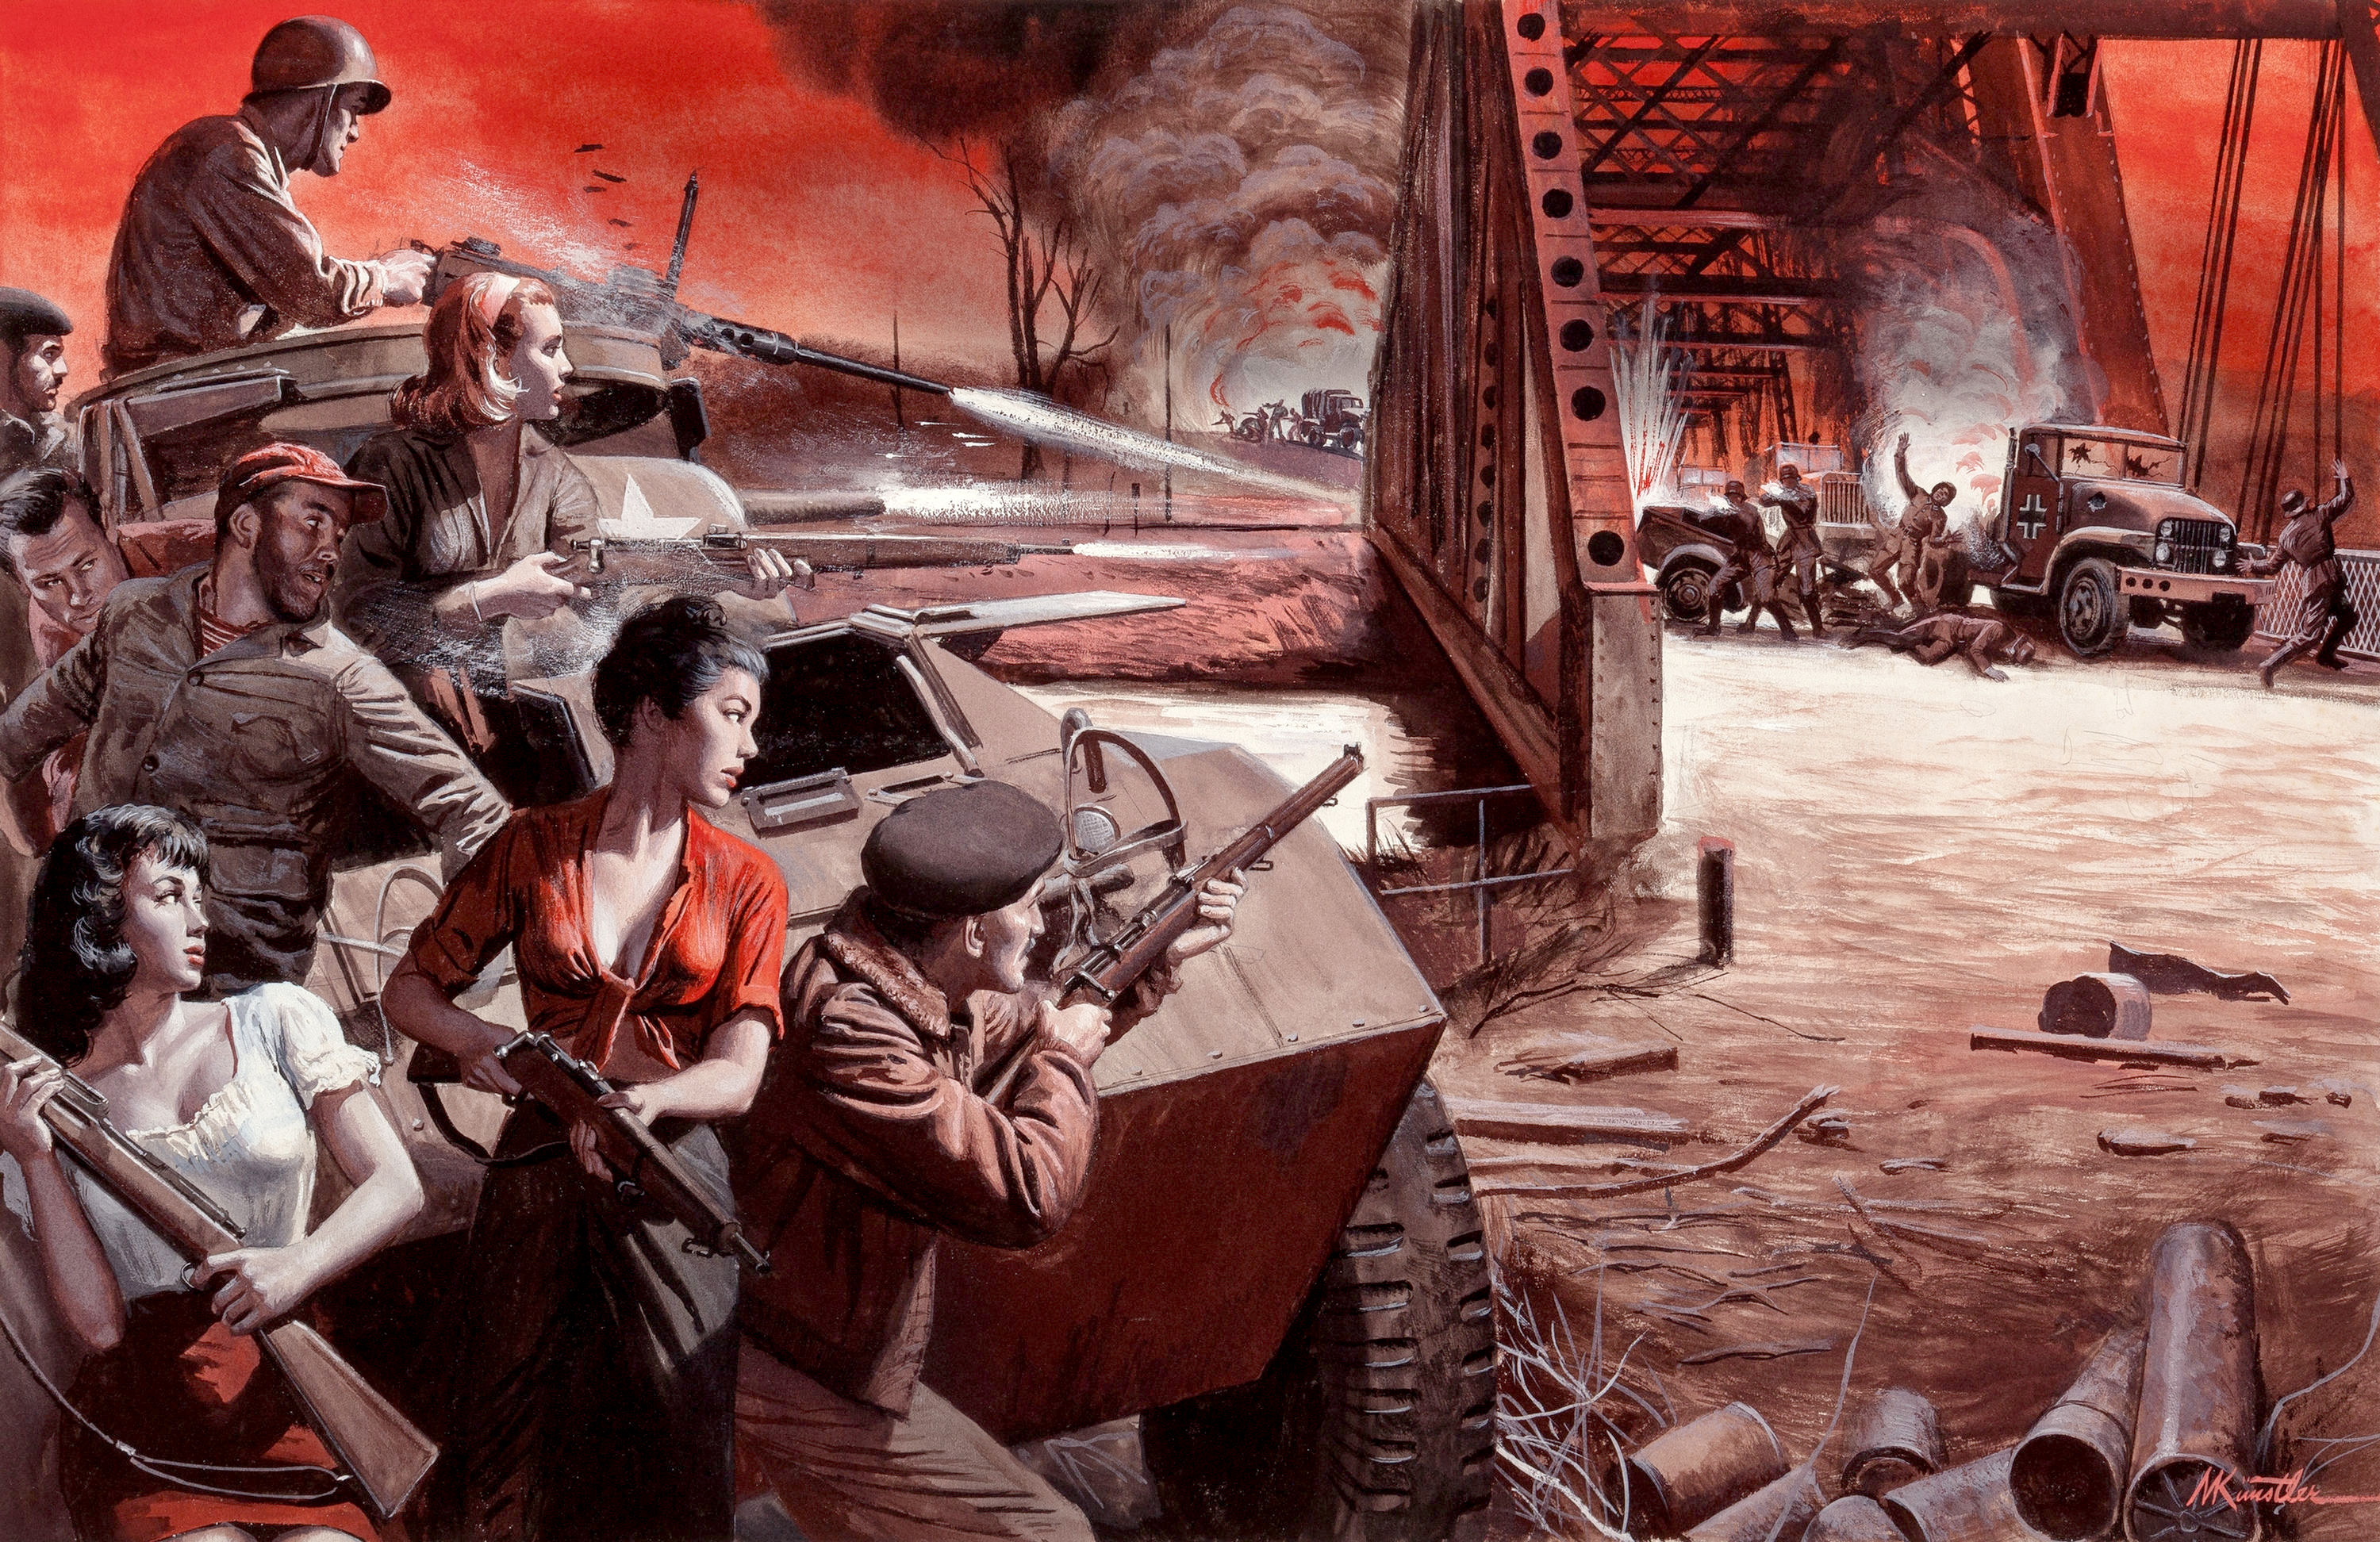 Wipe Out the 11th Panzer Division, Stag magazine, True Books Bonus story illustration, 1963.jpg